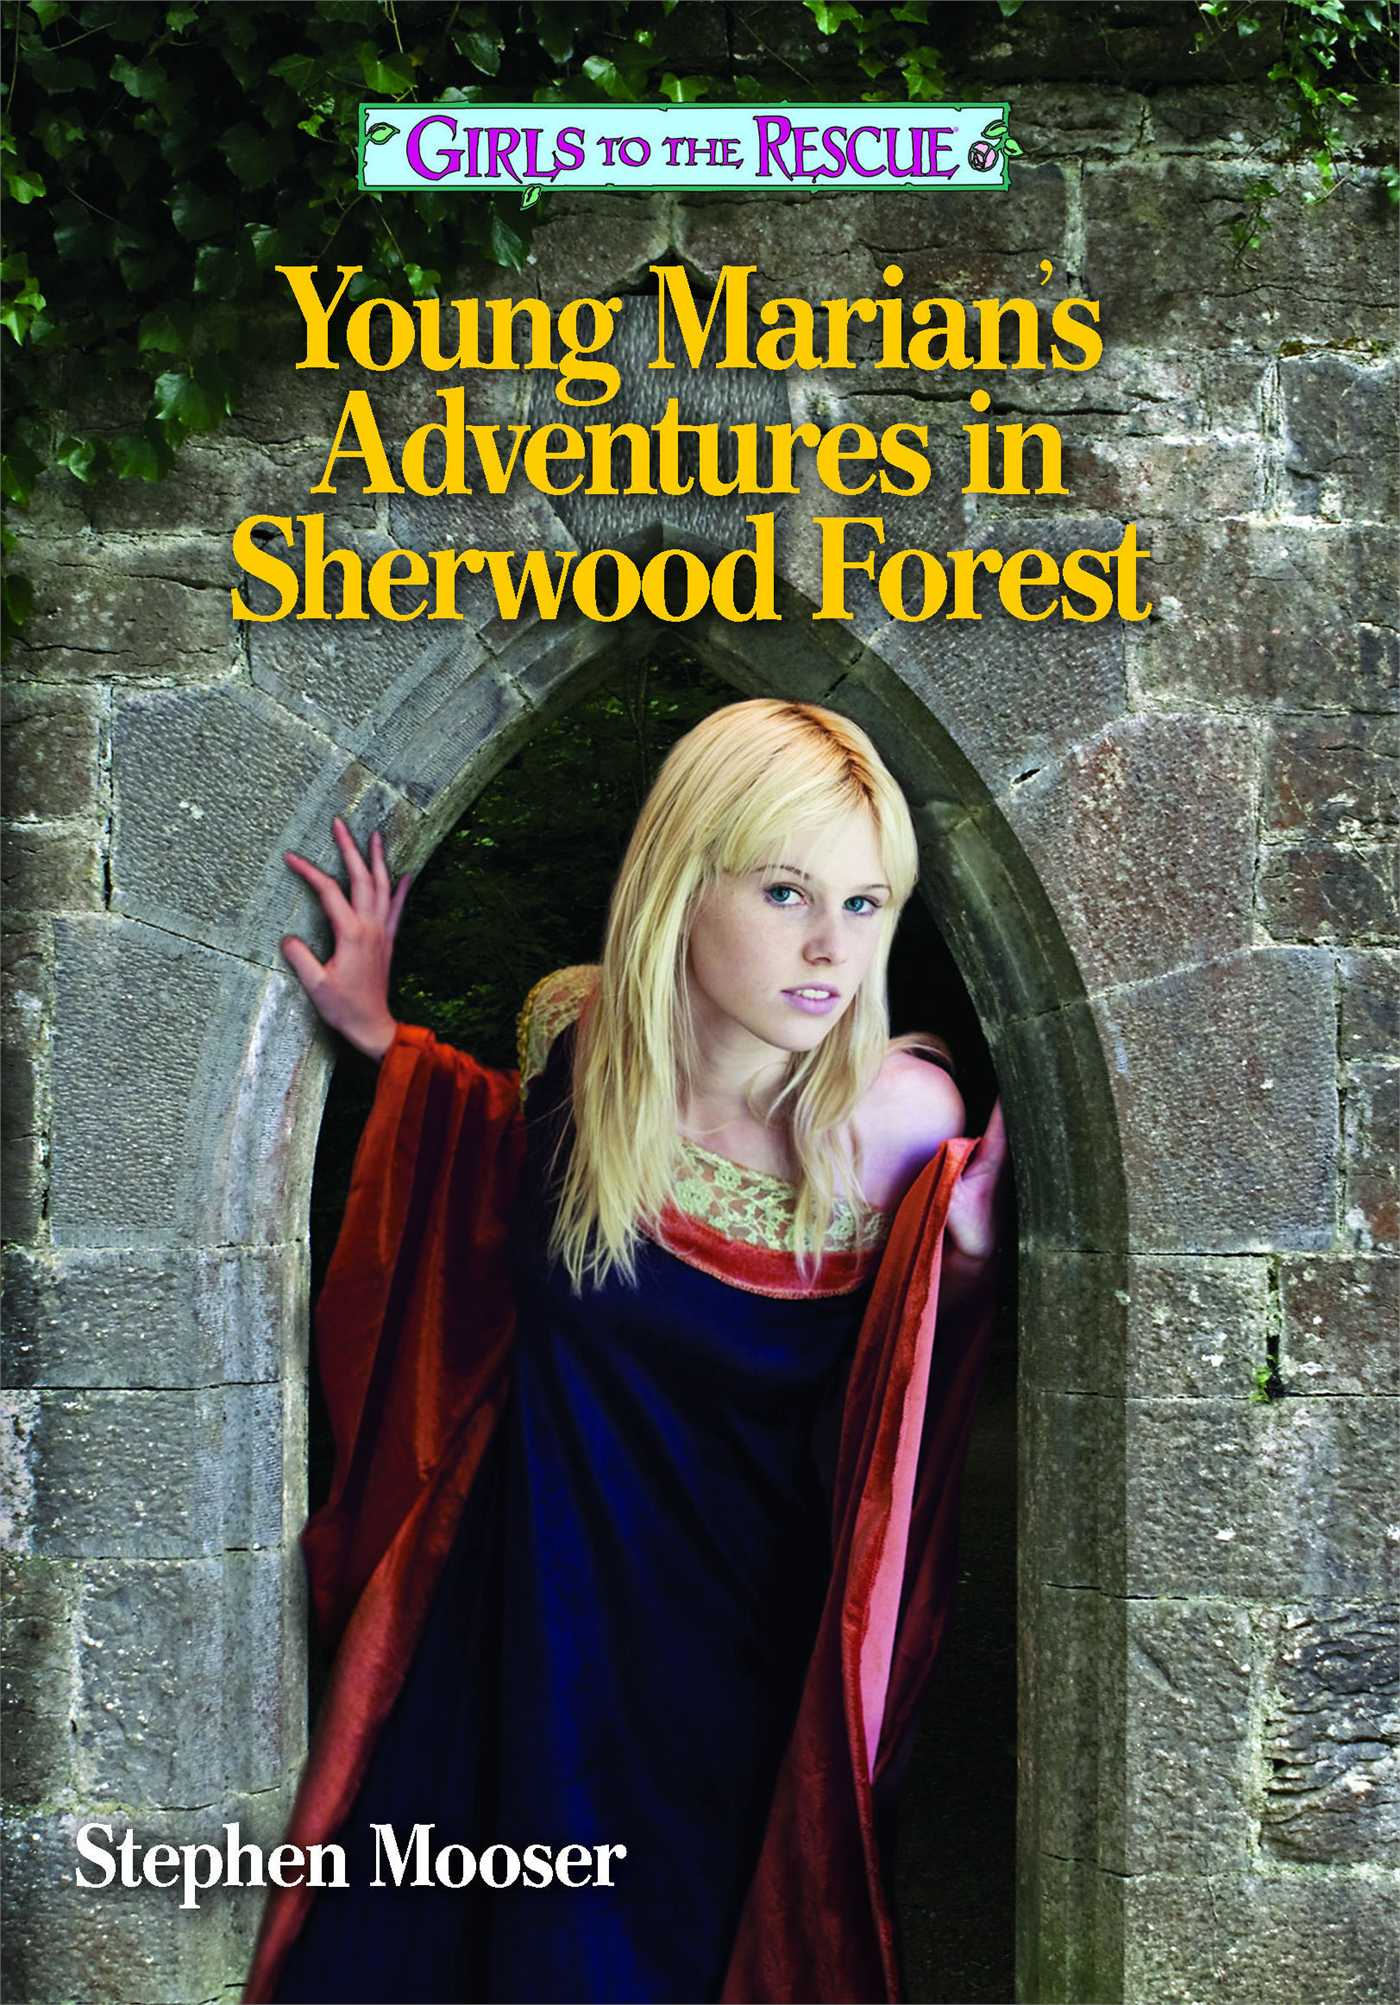 Girls-to-the-rescue-young-marians-adventures-in-sherwood-forest-9781442492011_hr